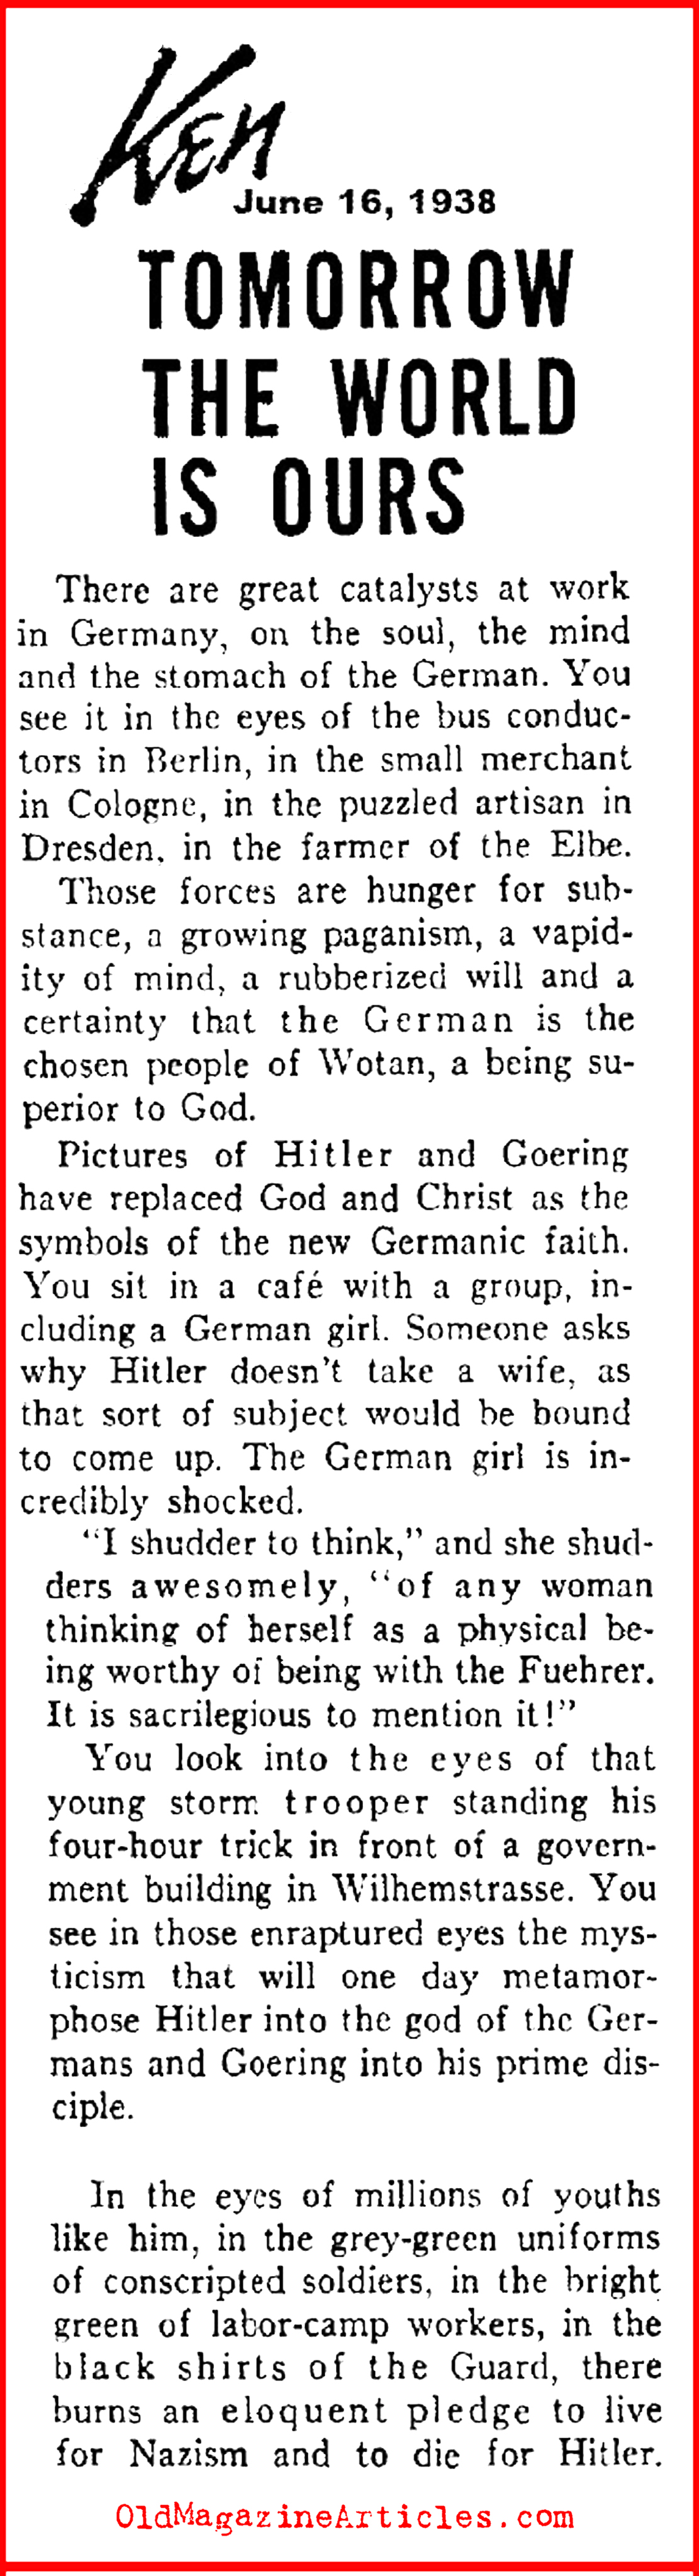 The Cult of the Hitler Personality (Ken Magazine, 1938)